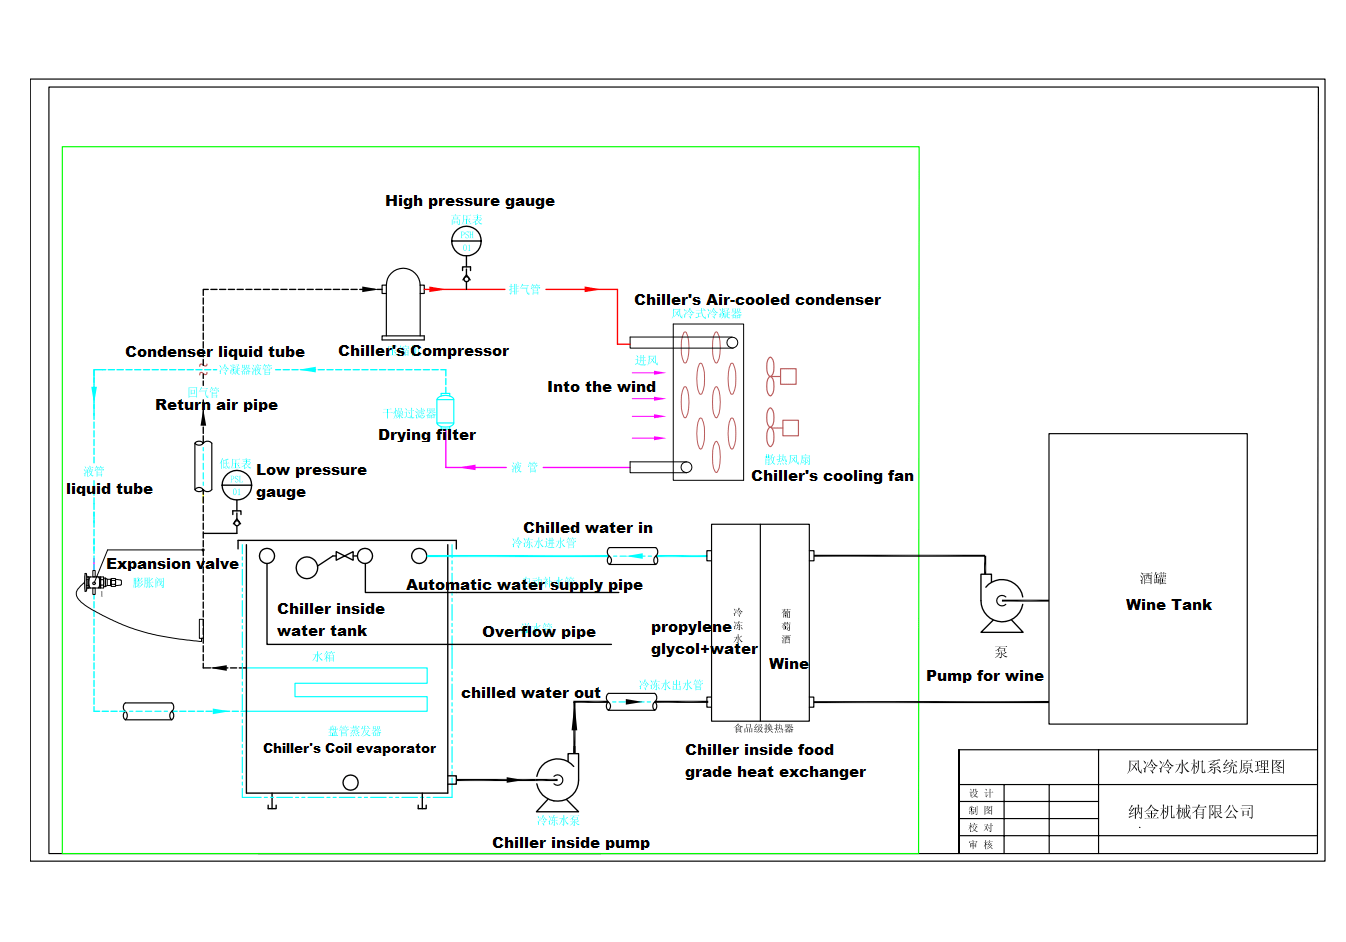 hight resolution of schematic diagram for air cooled chiller with inside heat exchanger png